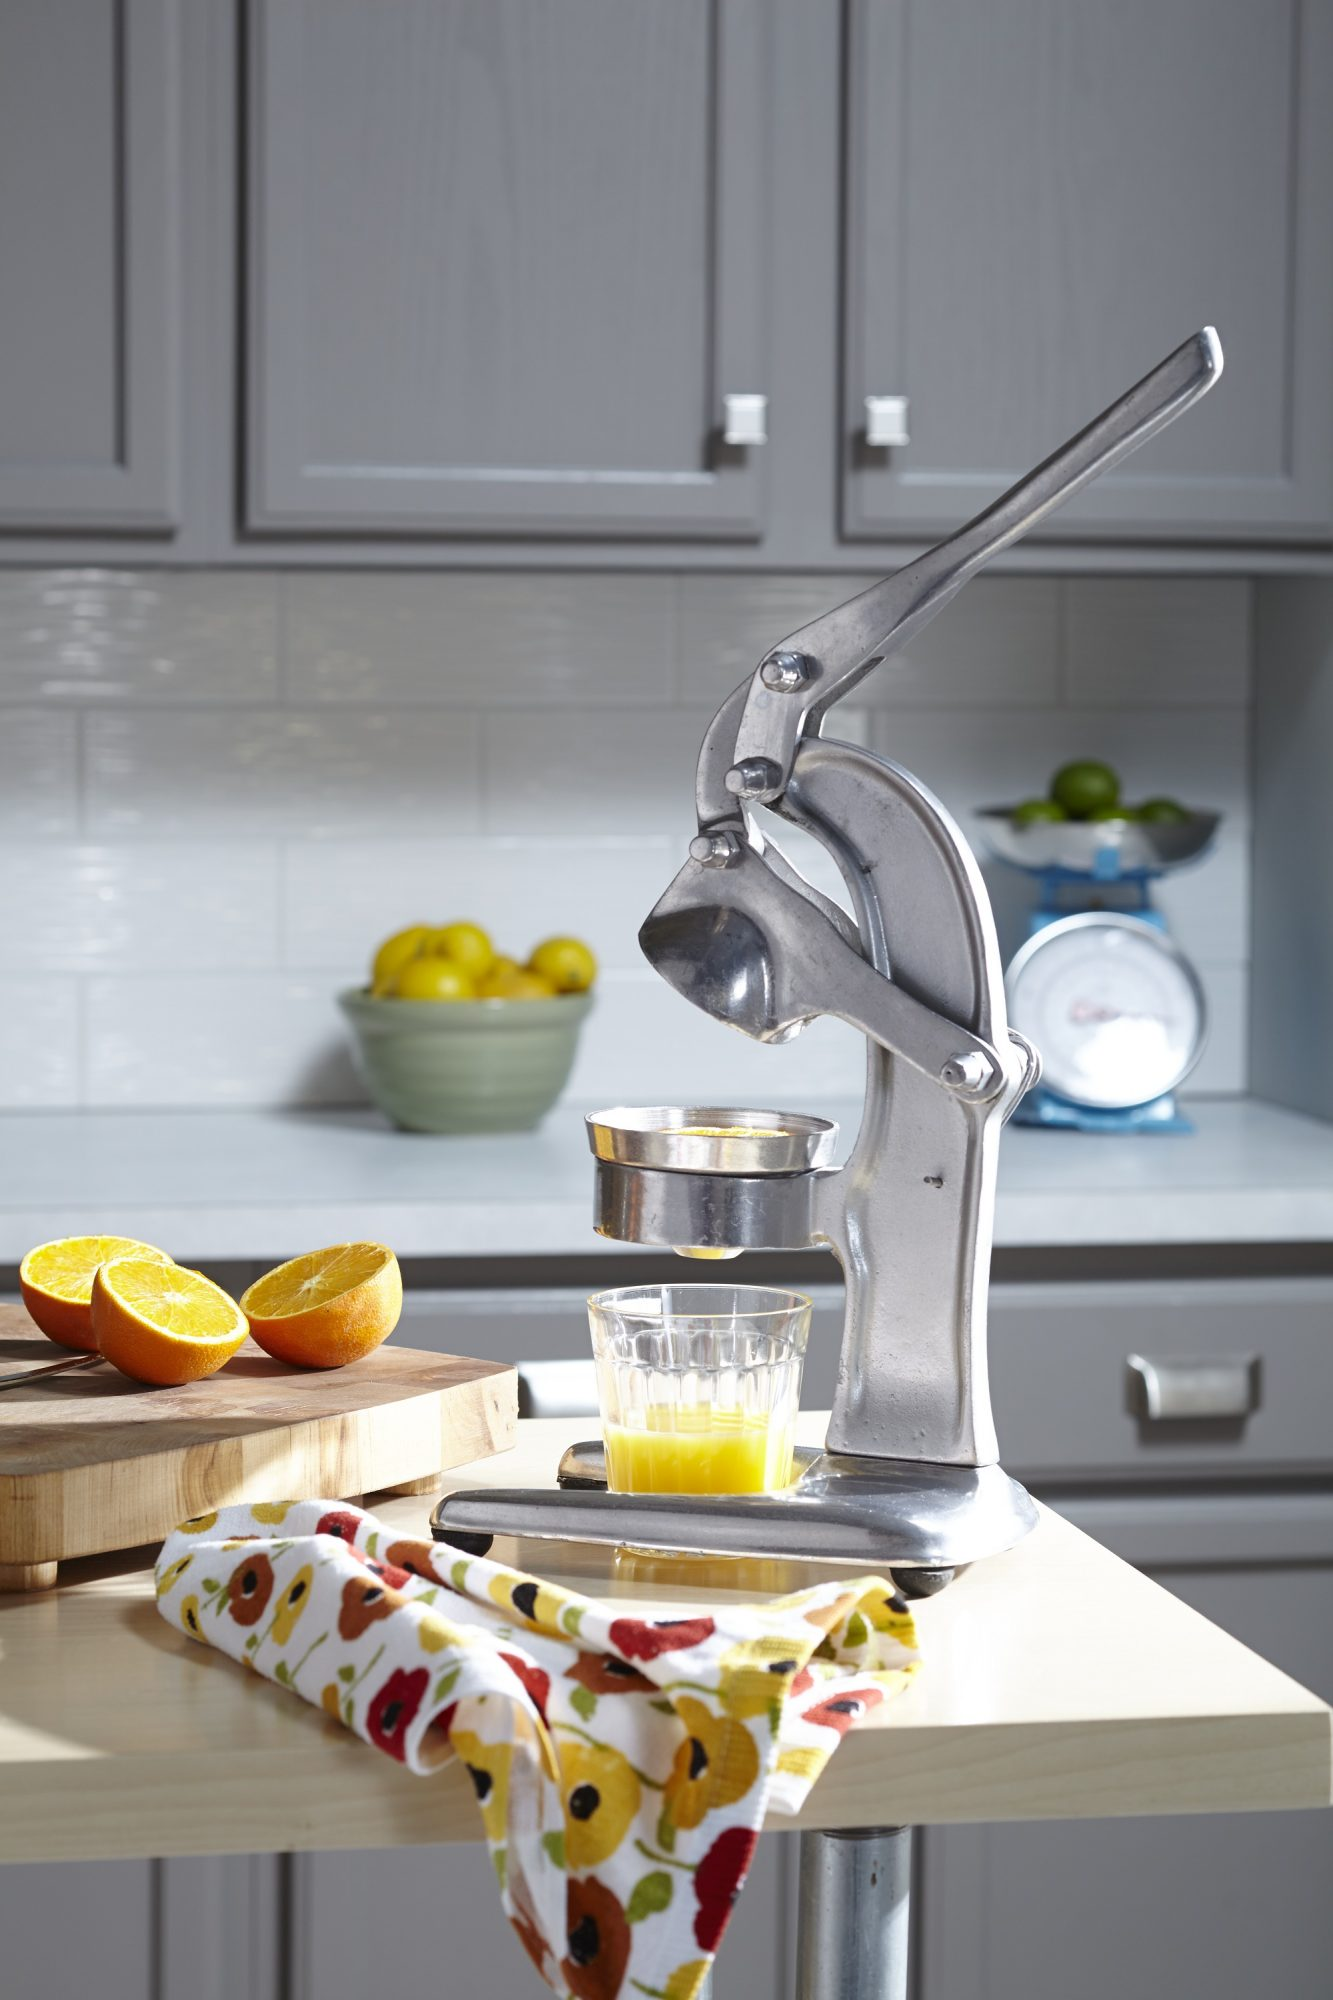 102214226 manual juicer photo by Meredith Publishing